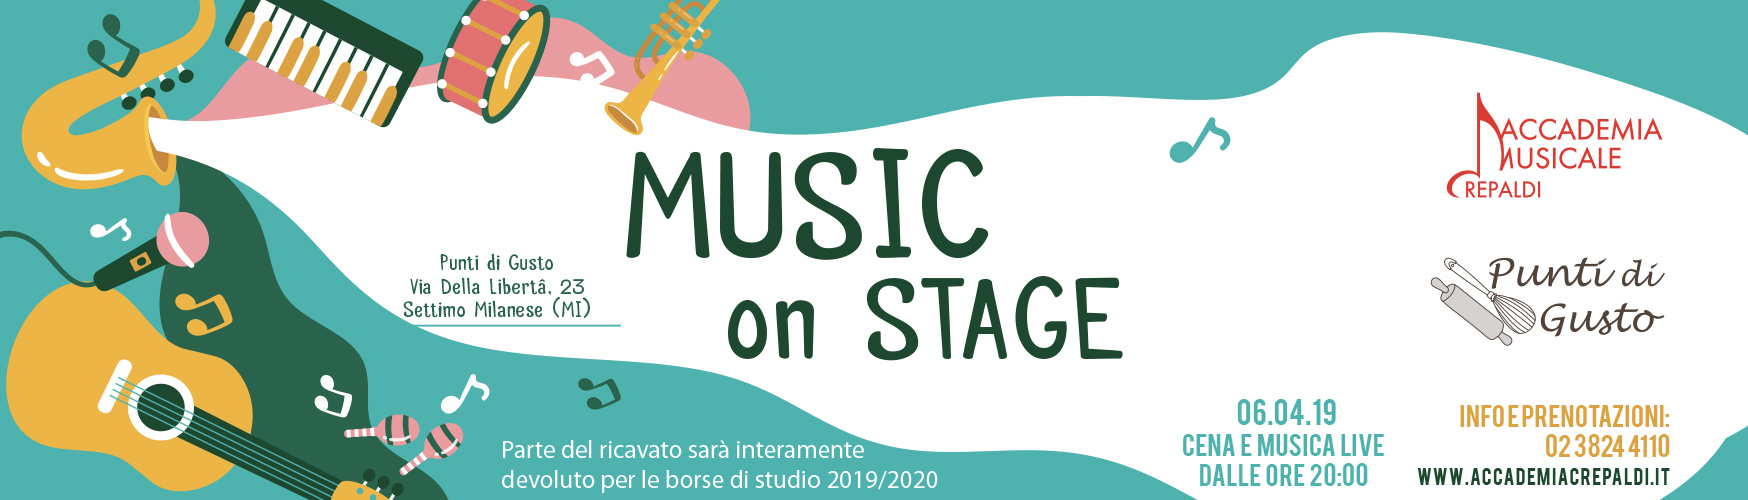 Music On Stage Acoustic Session @Punti di Gusto a Settimo Milanese (MI)